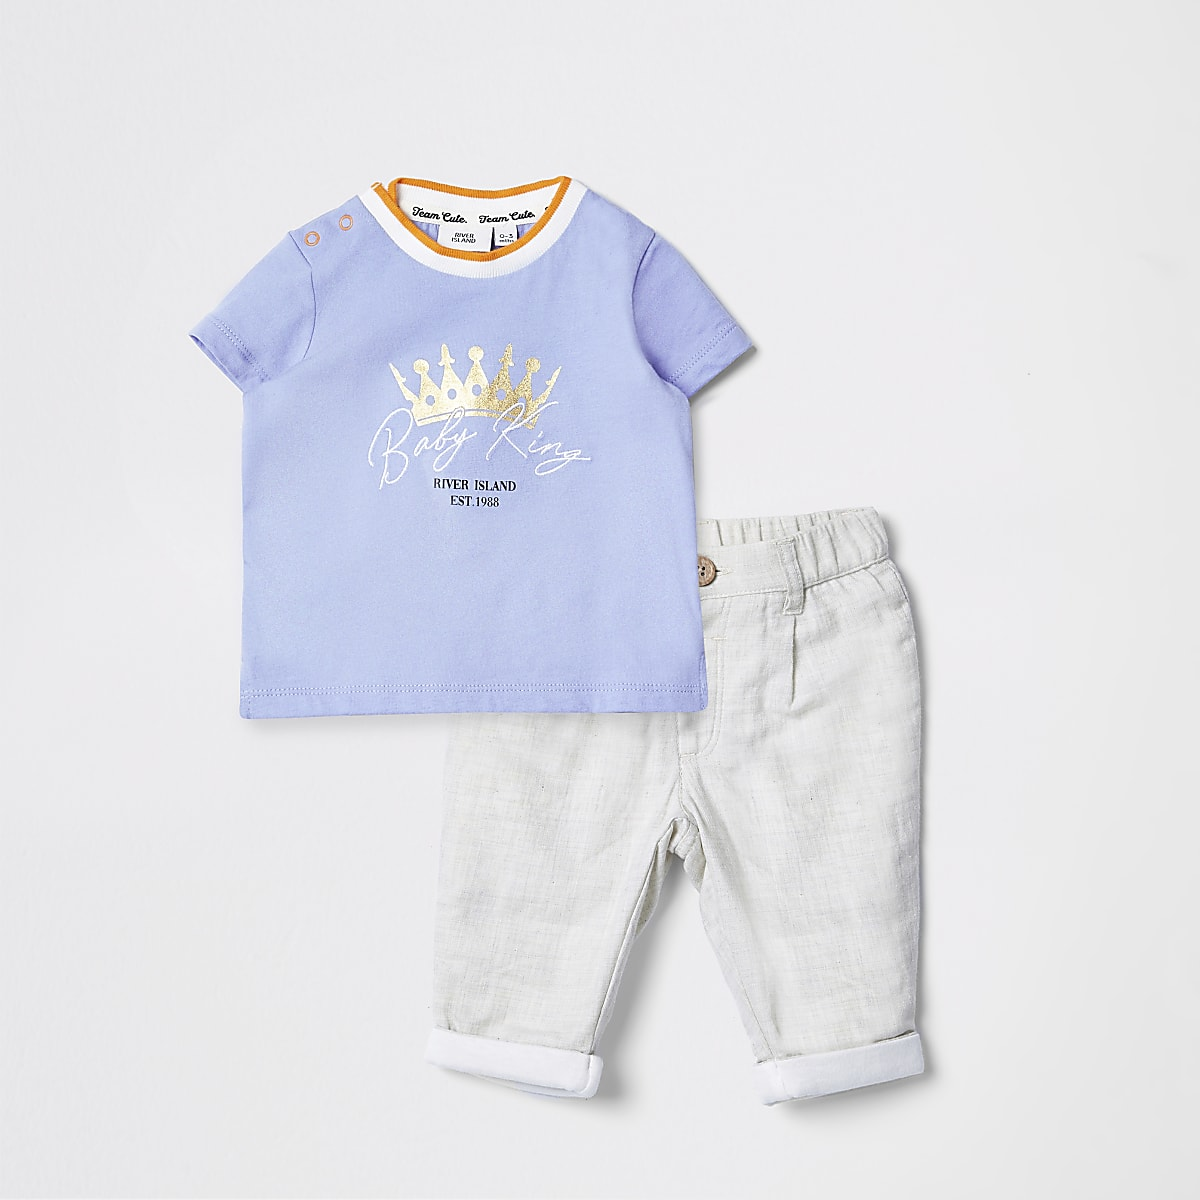 Baby blue foil print T-shirt outfit